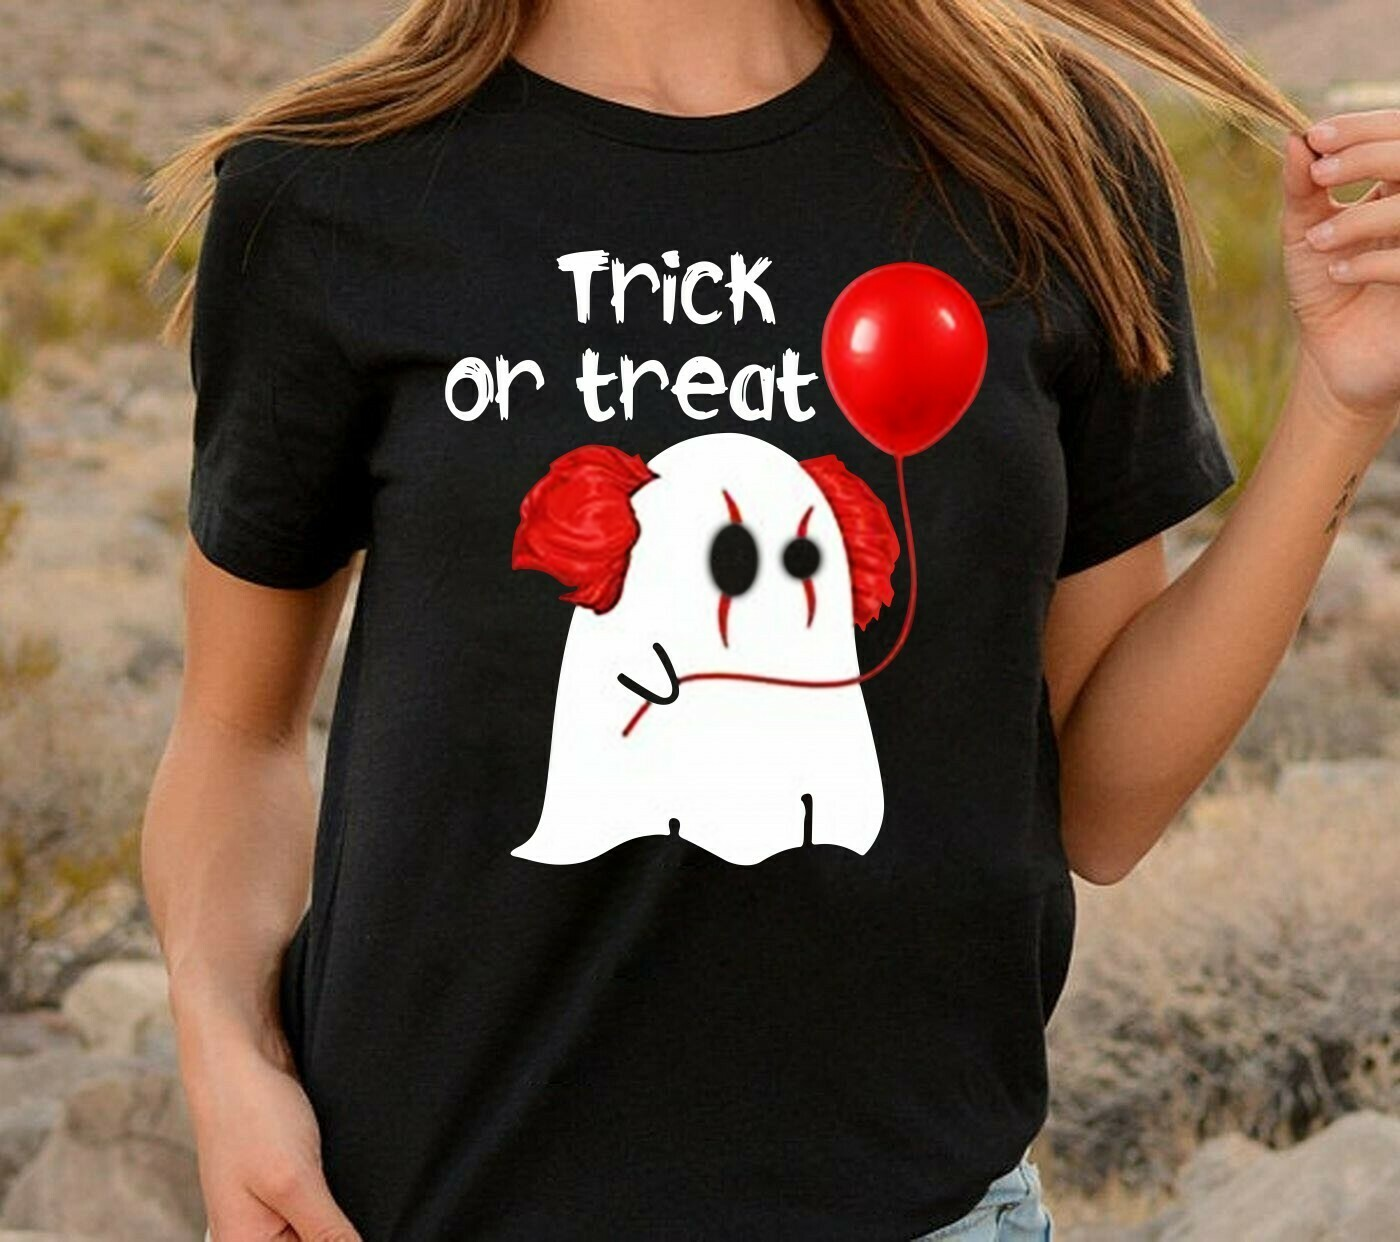 Boo IT Joker Pennywise Trick Or Treat We All Float Down Here Horror Spooky Clown Balloons Villains Halloween Movie Mashup Gift UnisexT-Shirt Long Sleeve Sweatshirt Hoodie Jolly Family Gifts